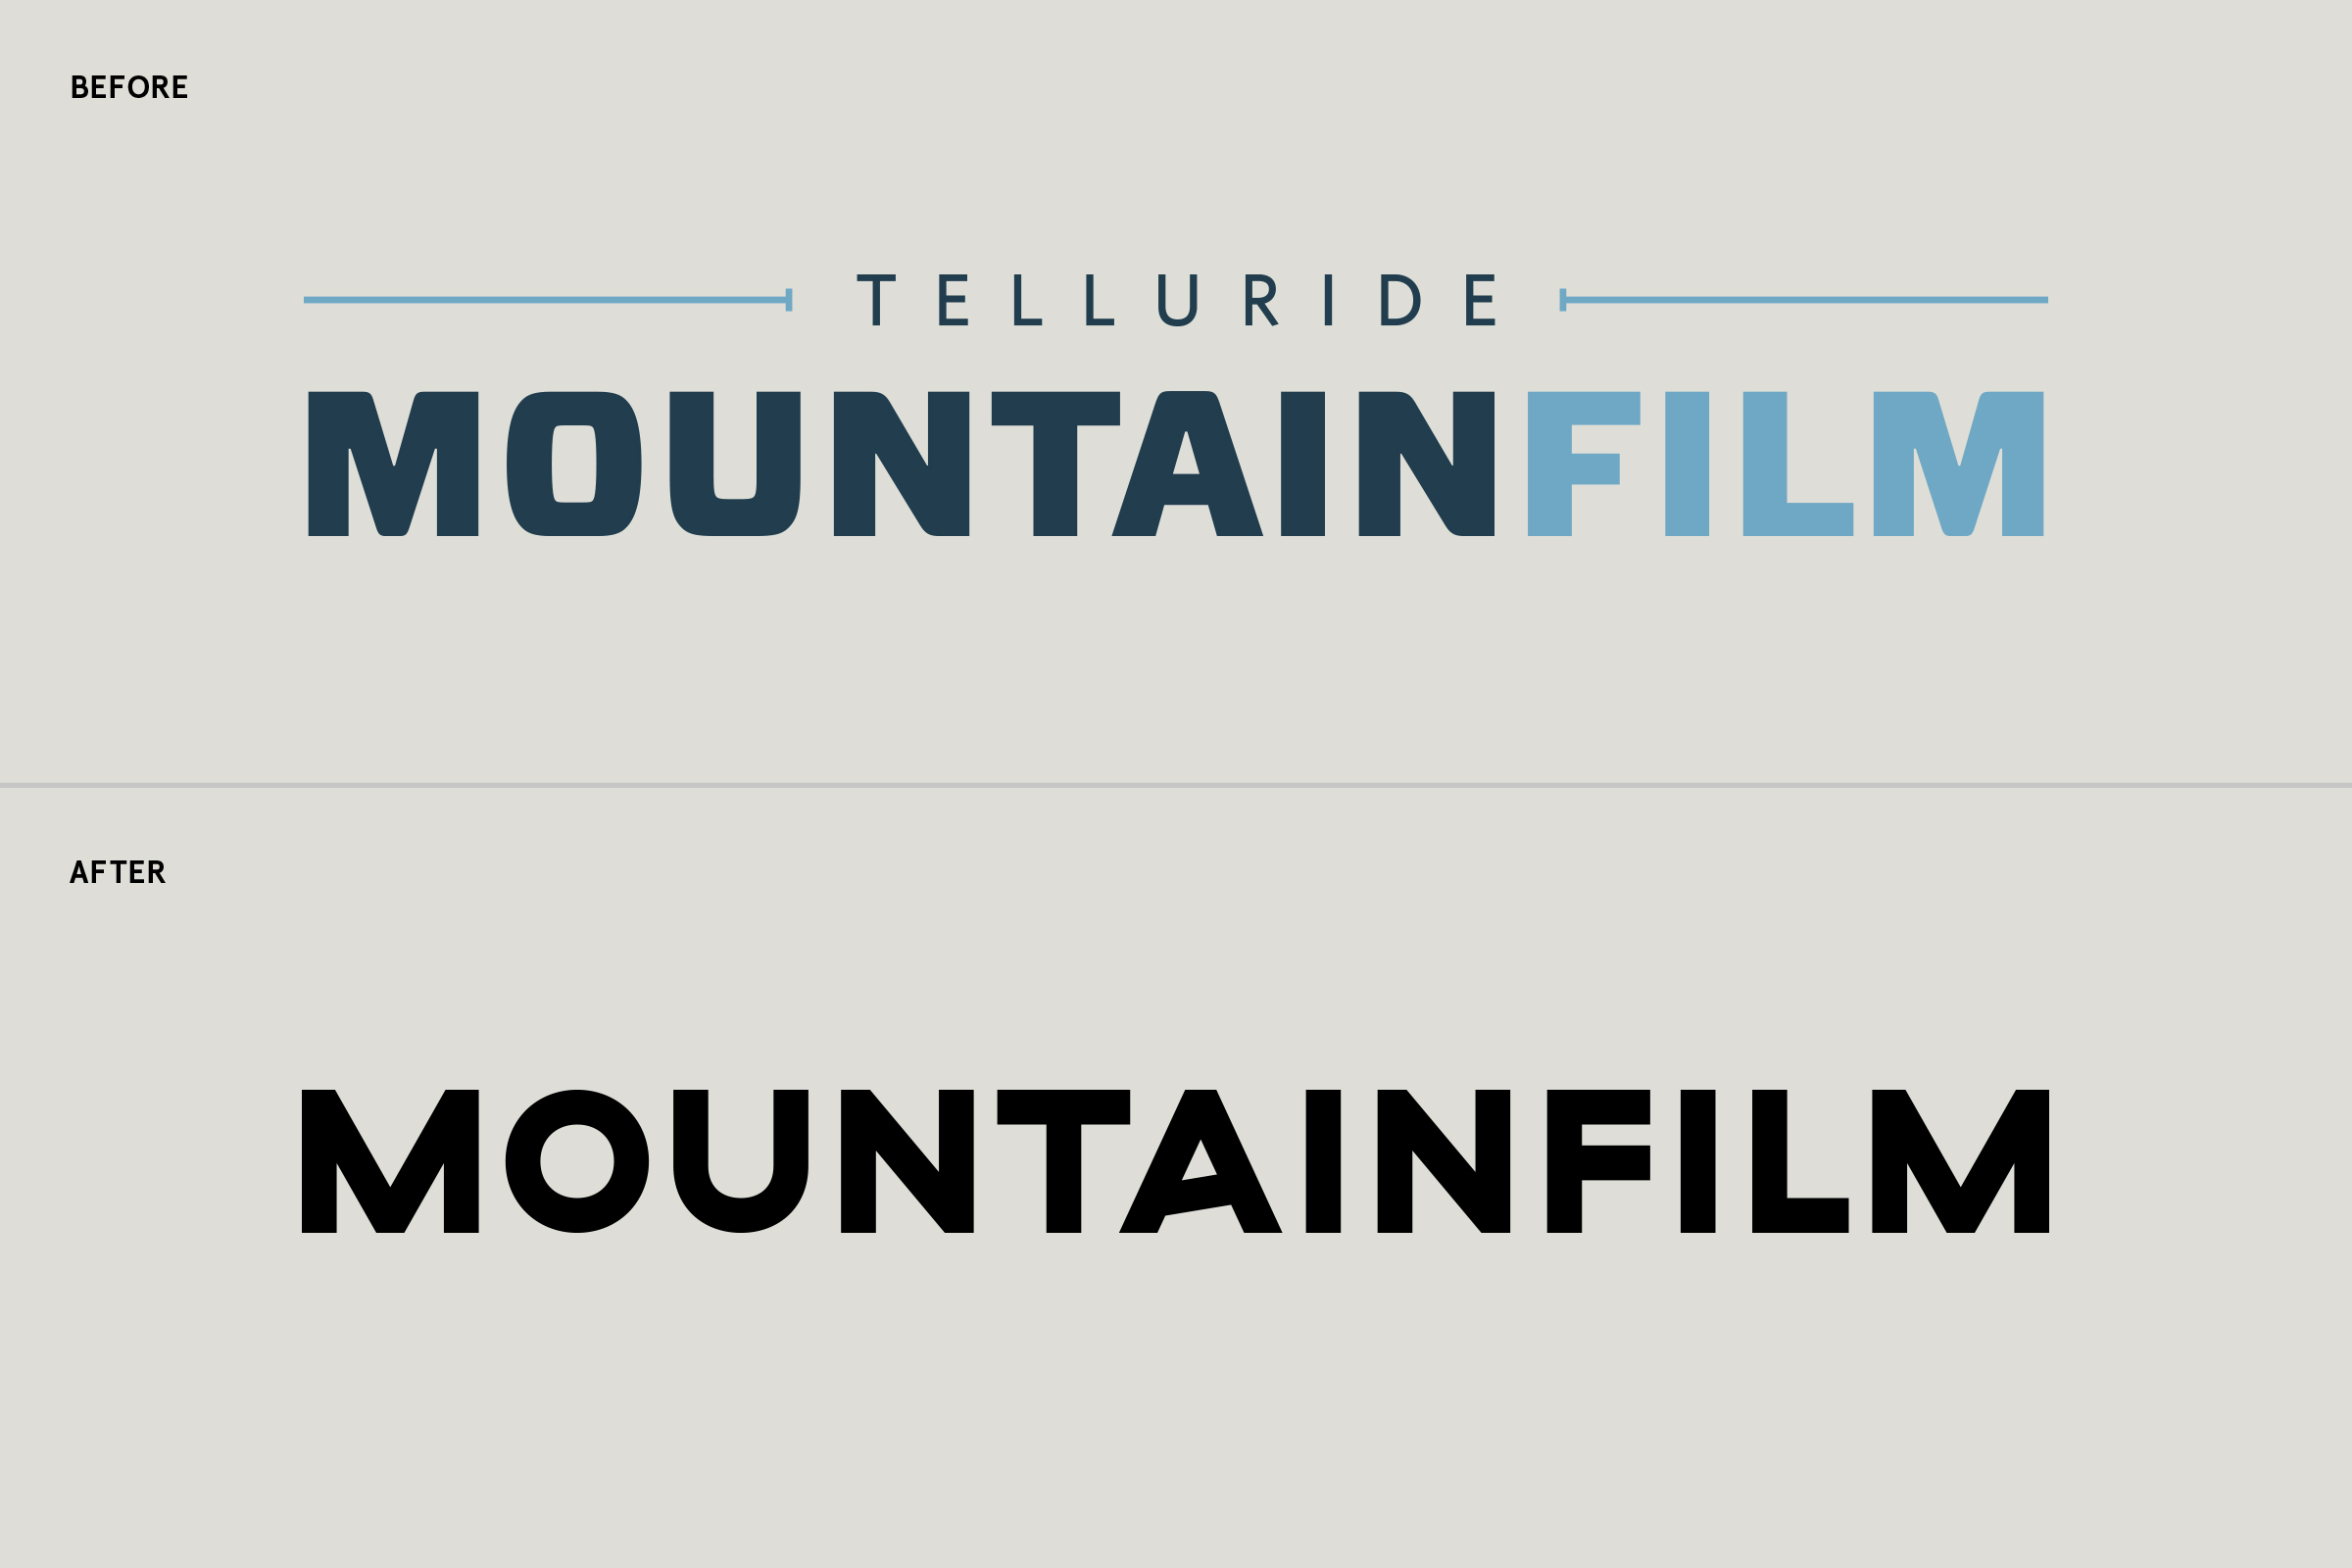 Mountainfilm_beforeafter